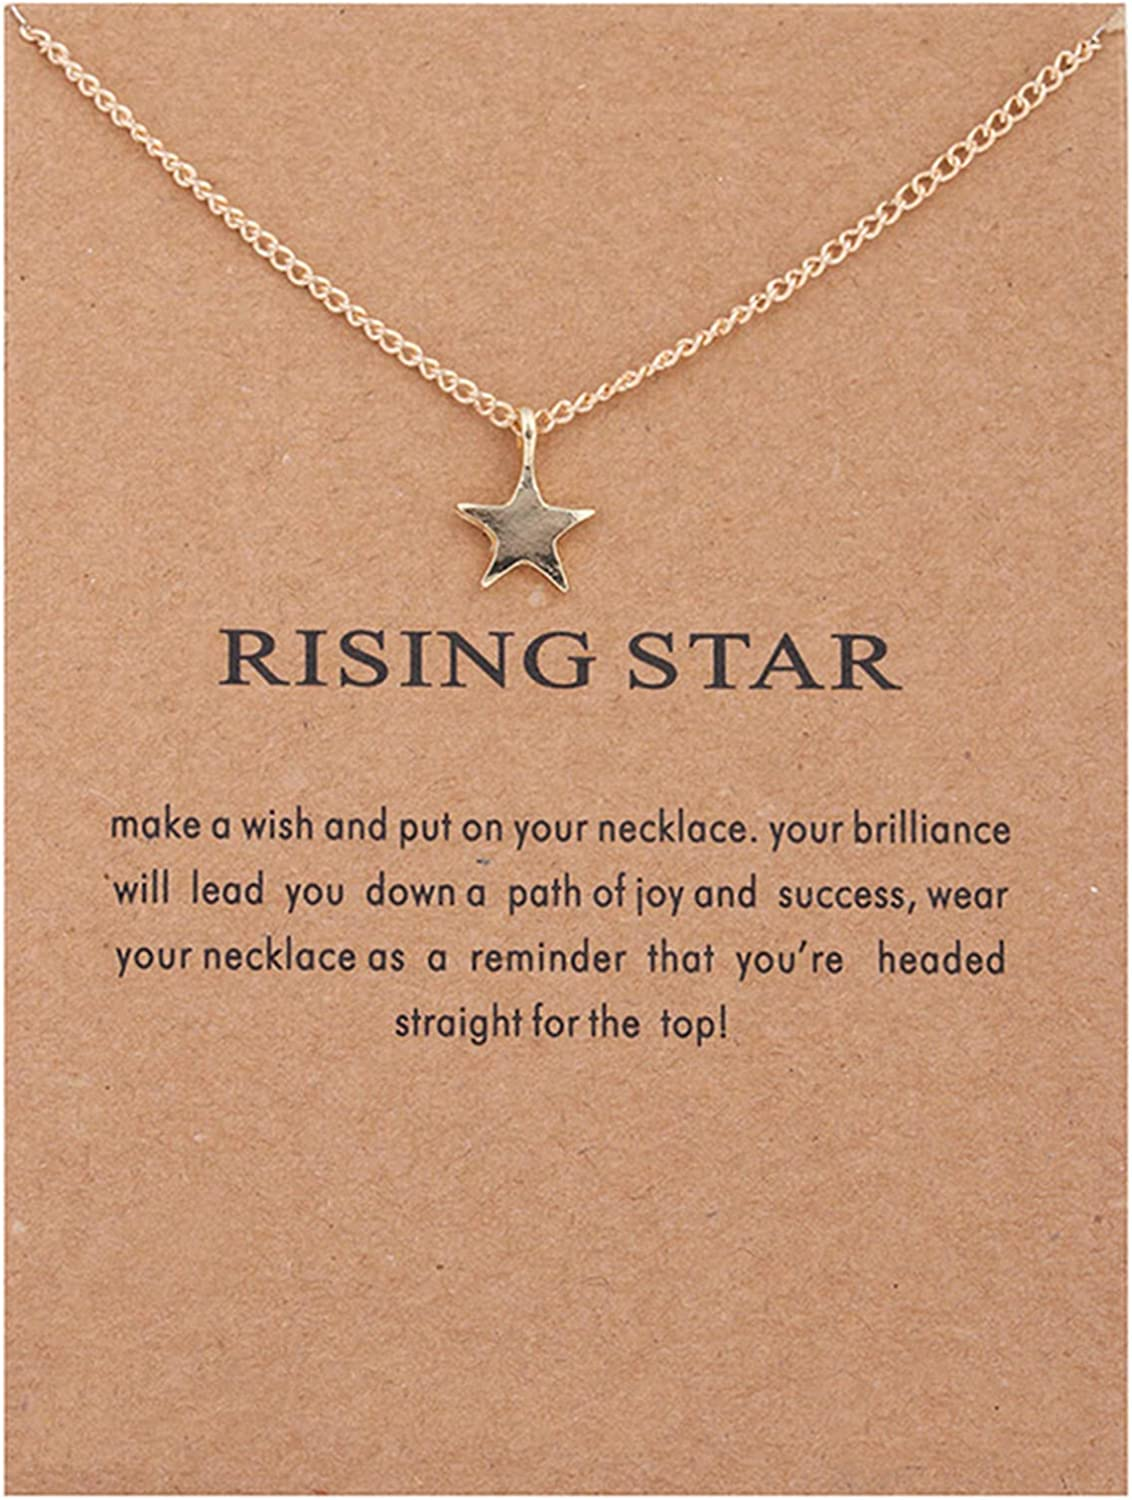 Friendship Couple Necklace Pendent Chain for Women Girls Gold Jewelry Gift